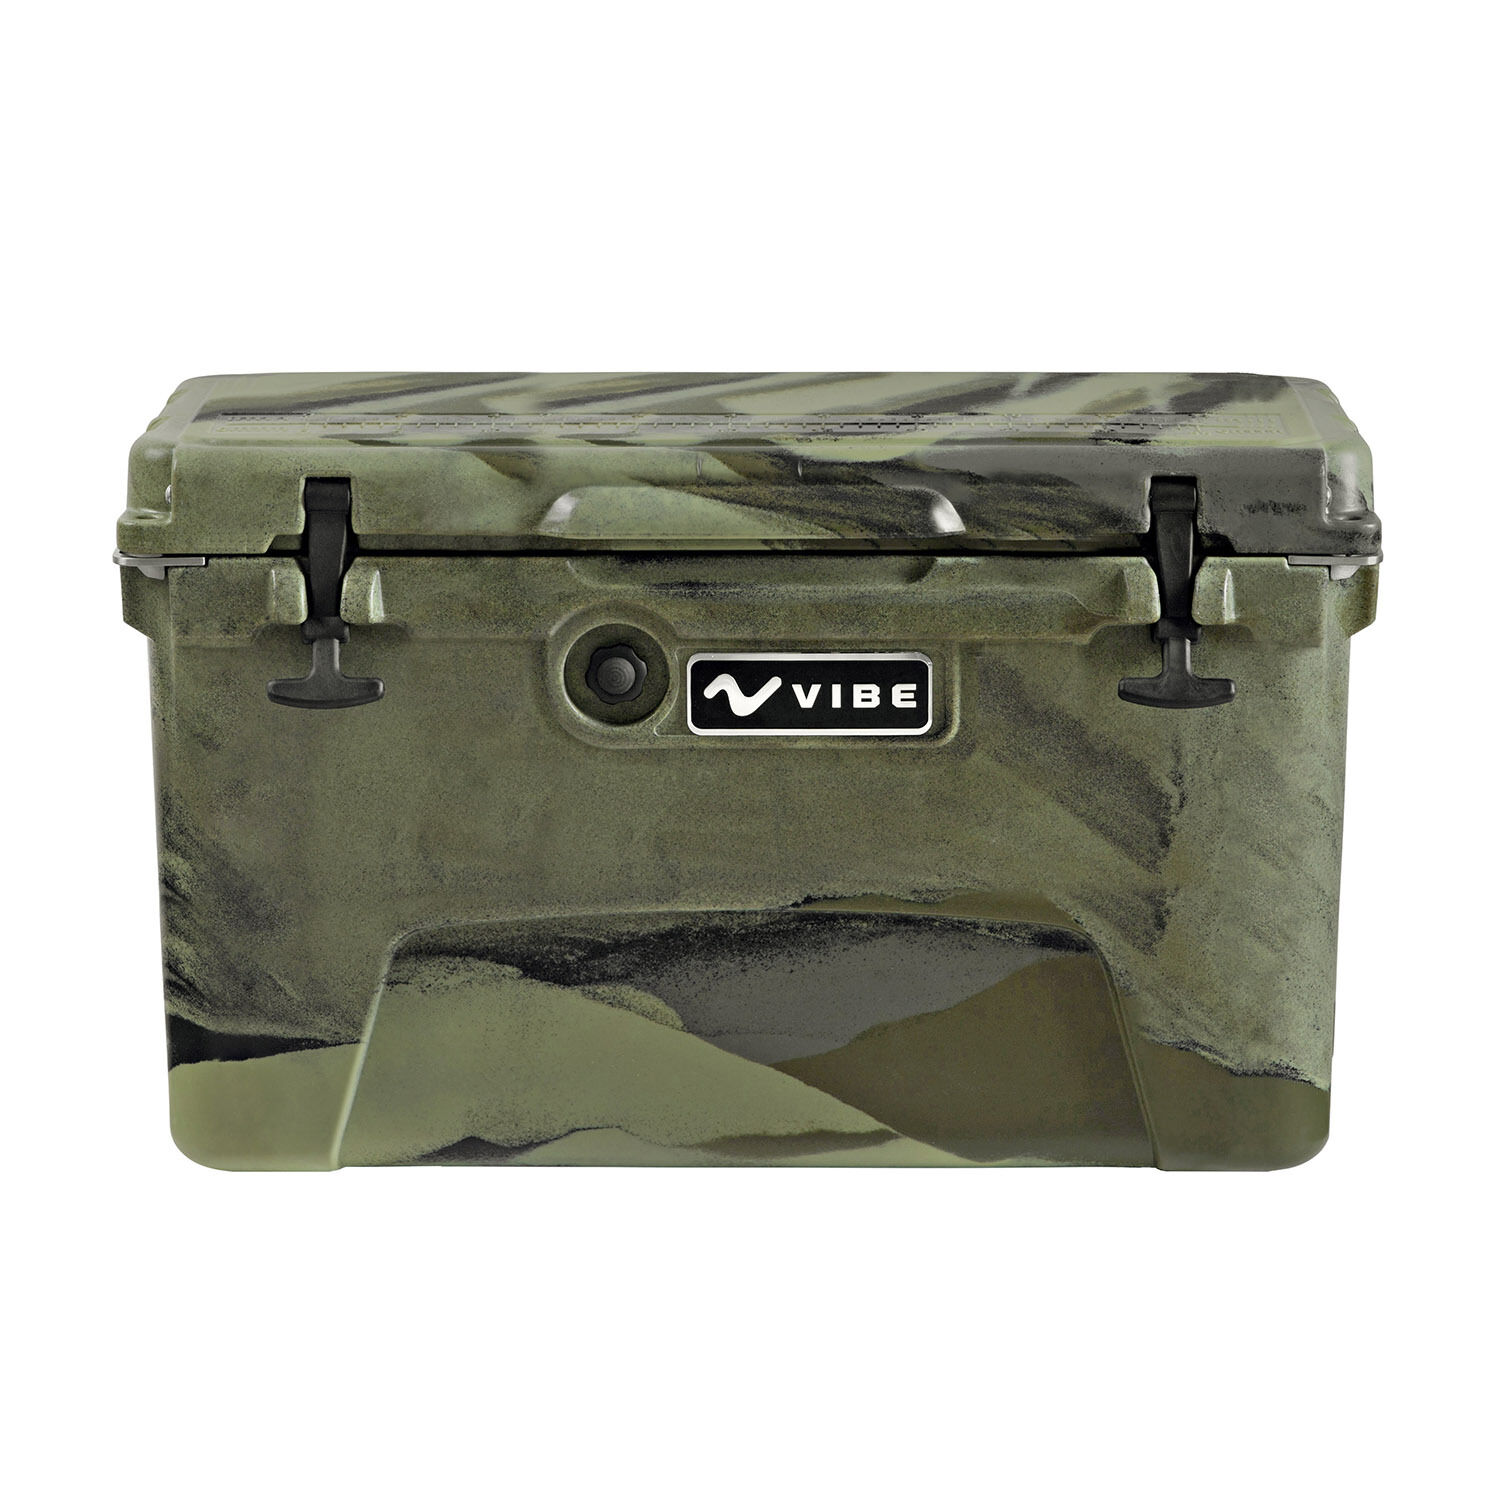 Vibe Element 45Q redo Molded Cooler Ice Chest with Bottle Openers - Hunter Camo